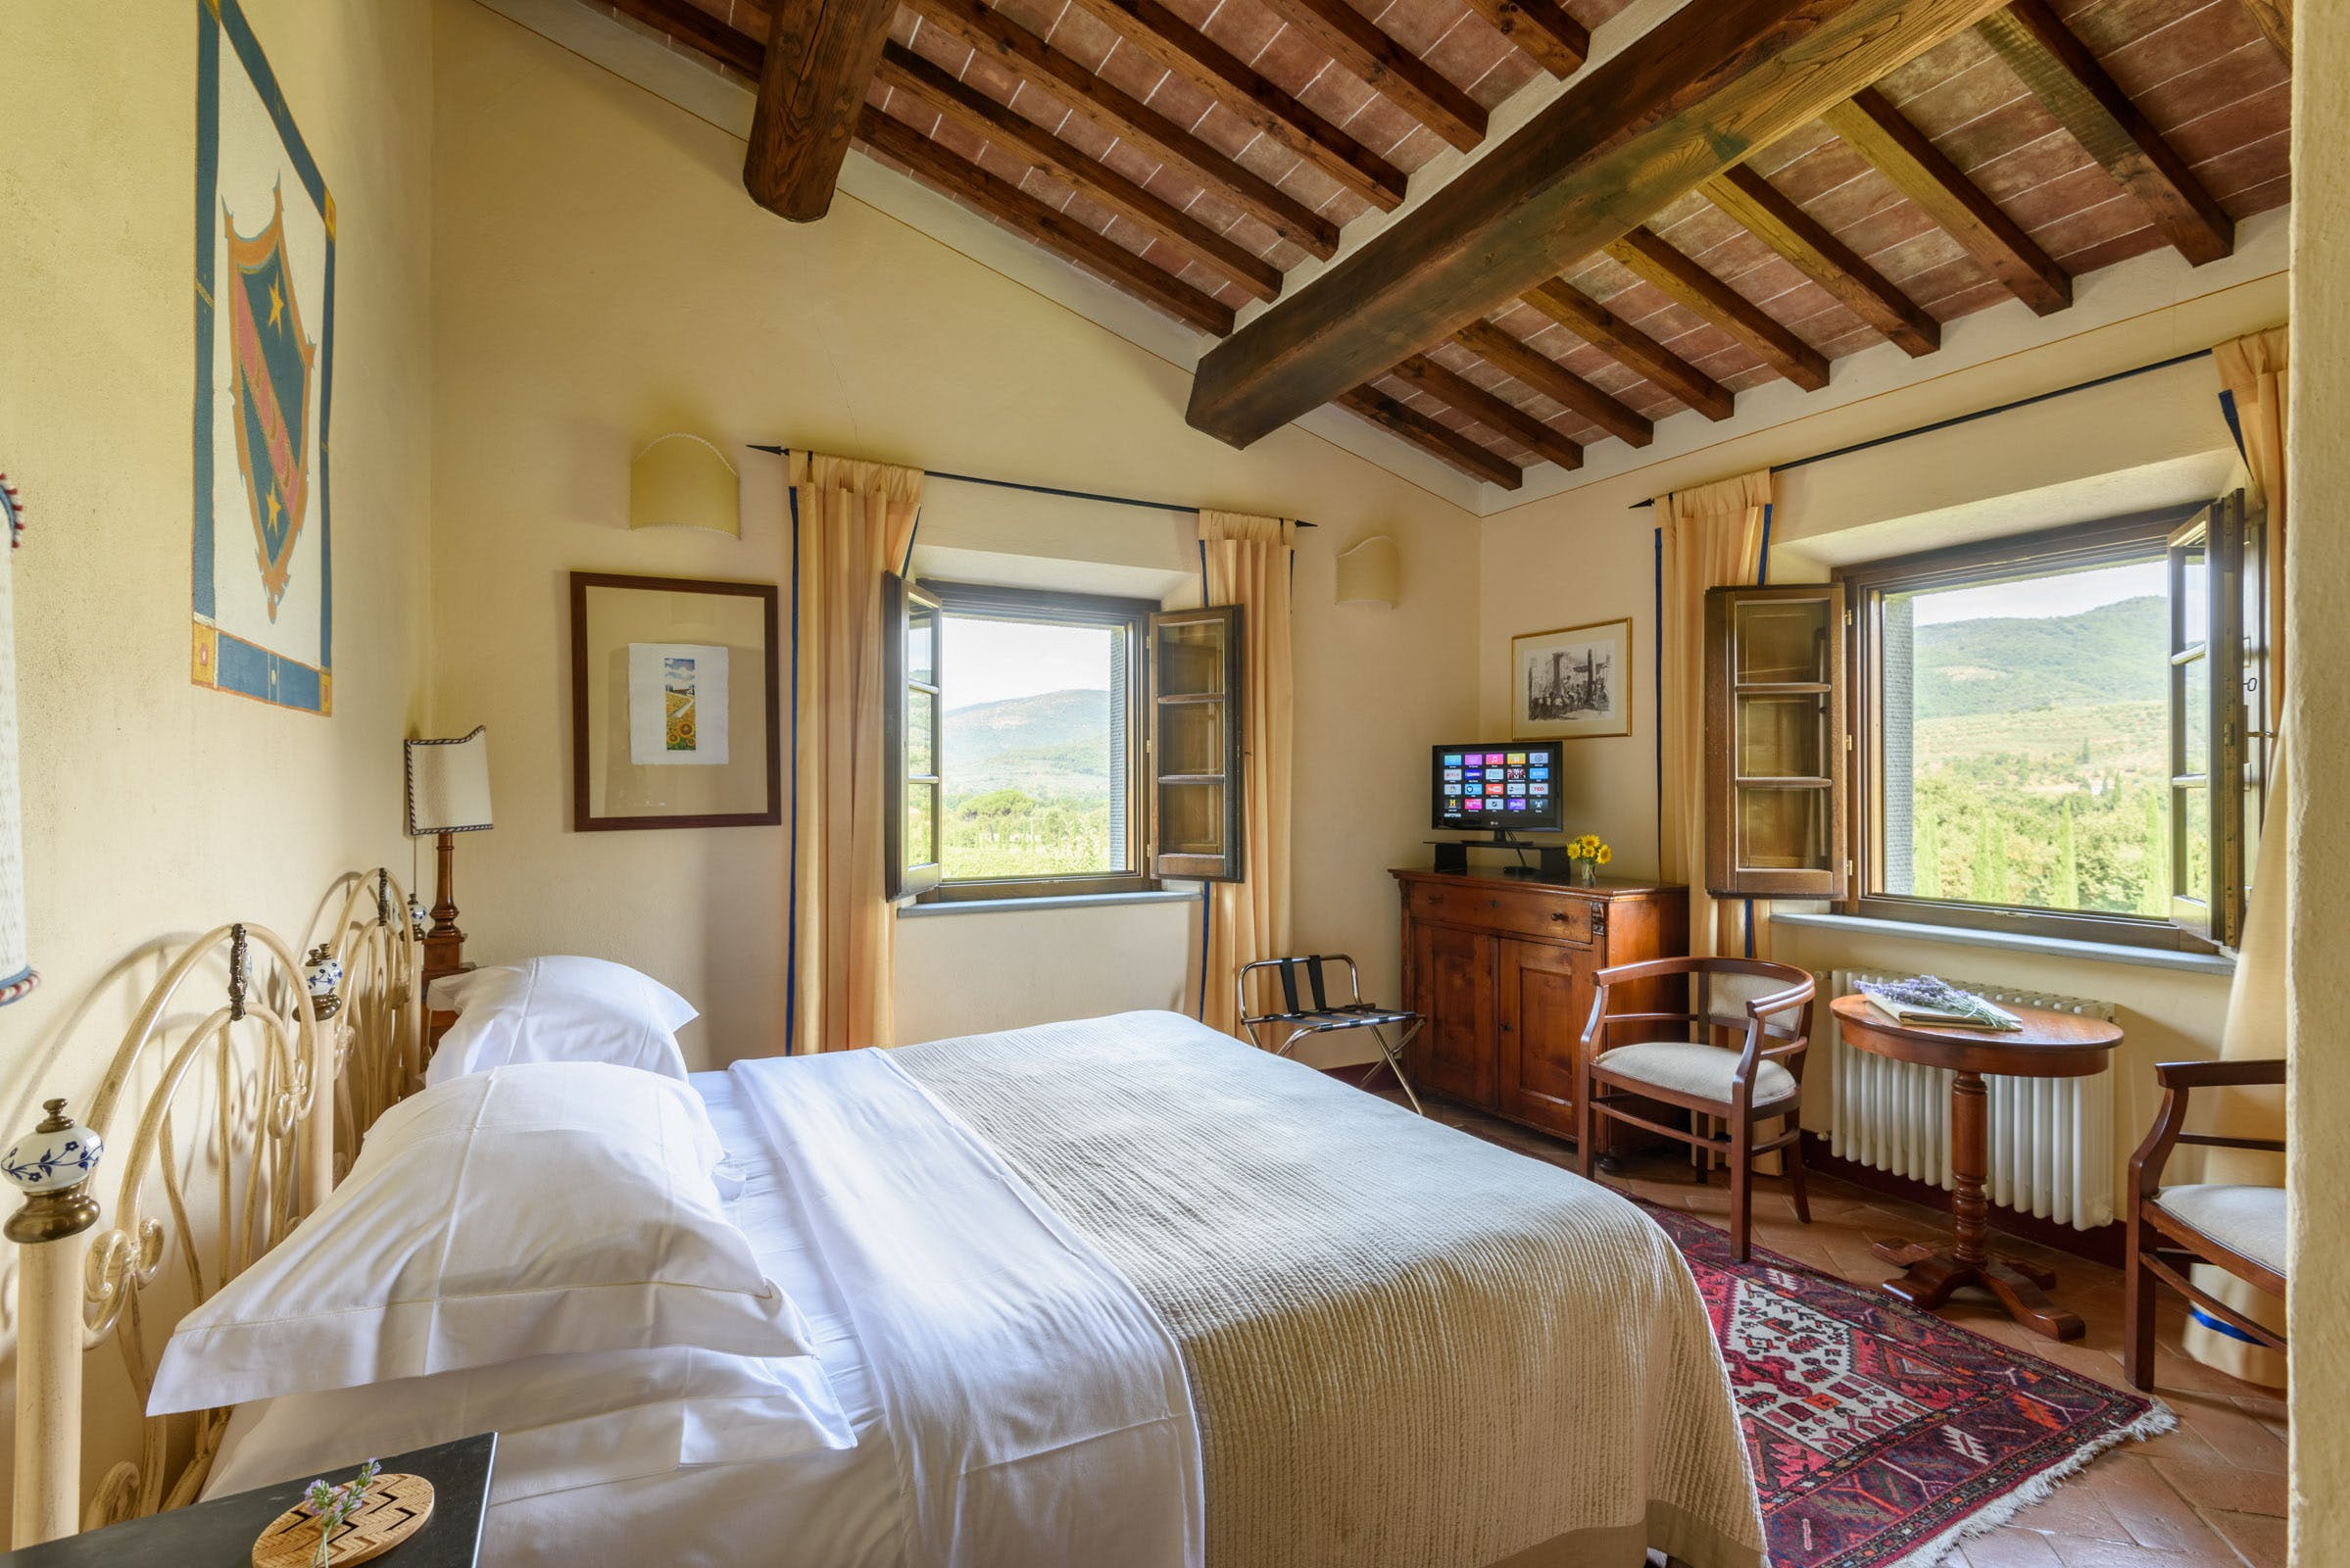 Casa Portagioia Tuscany bed and breakfast , Nocci double bedroom with views of gardens, vineyards and olive groves